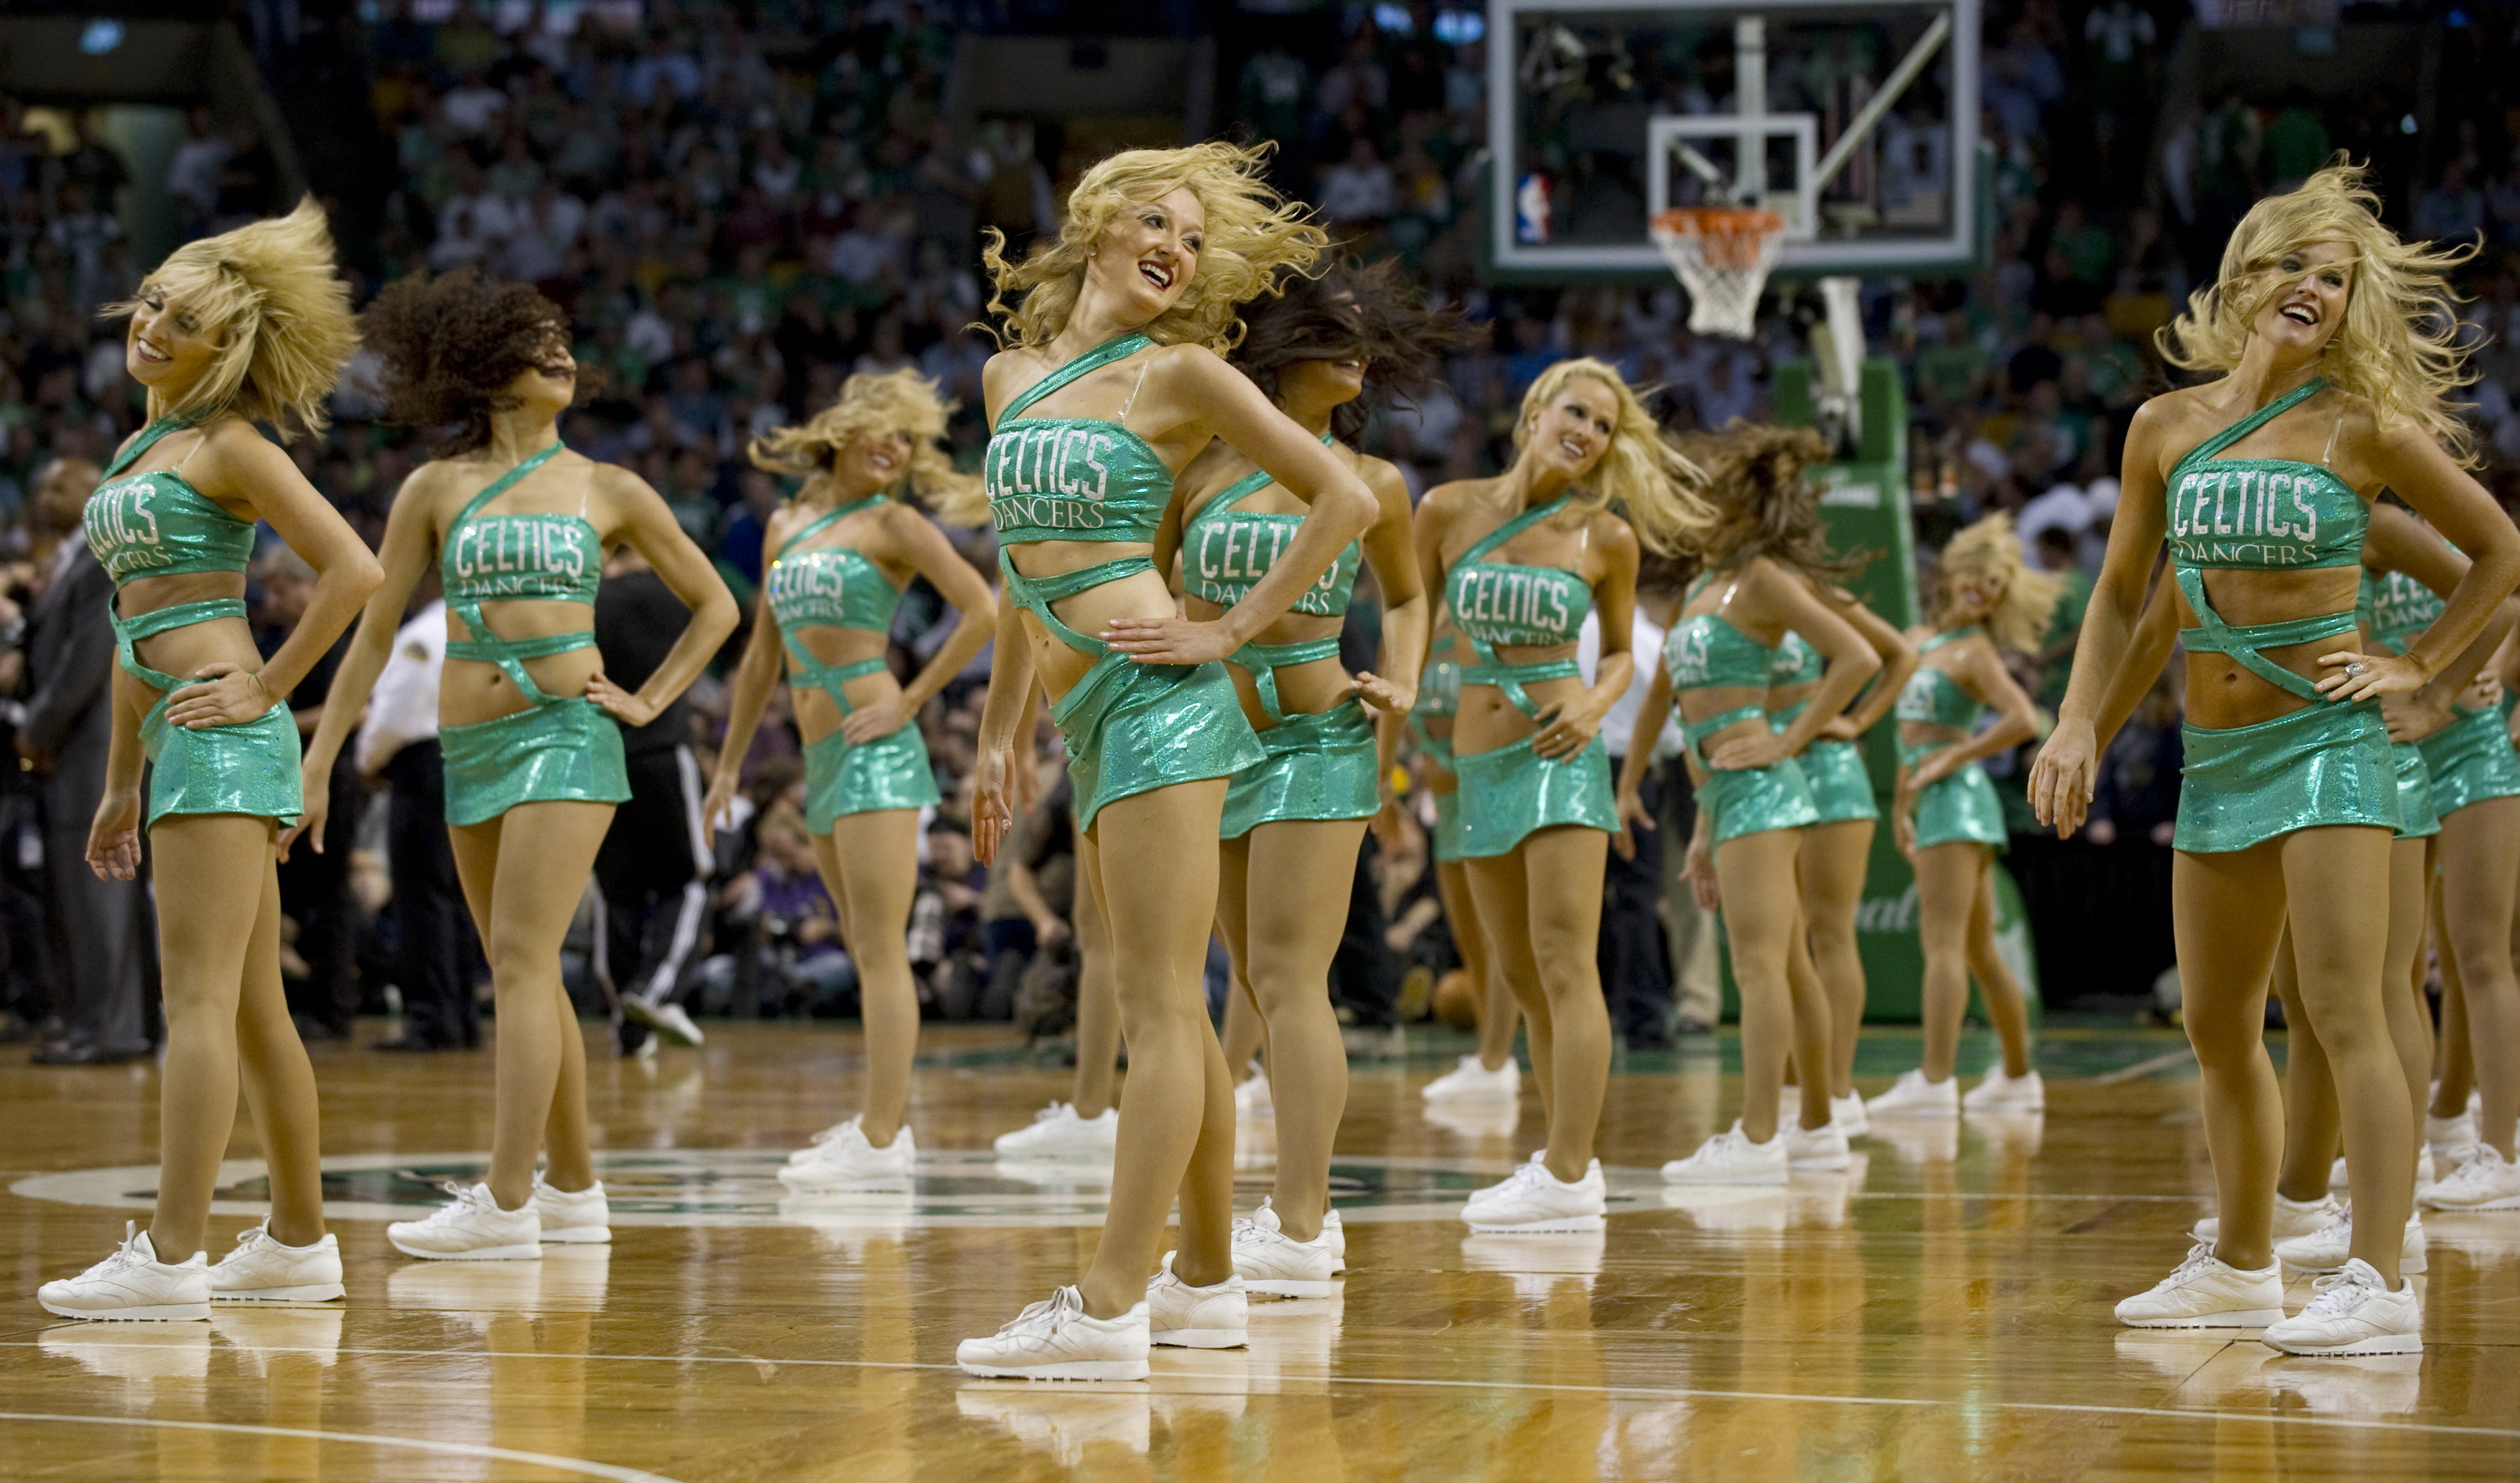 Boston Celtics cheerleaders perform during game three of the NBA Finals against the La Lakers on June 8, 2010 in Boston. Kobe Bryant scored 29 points and Derek Fisher finished with 16 as the Lakers beat the Celtics 91-84 to take a 2-1 series lead in the NBA finals. AFP PHOTO / DON EMMERT (Photo credit should read DON EMMERT/AFP/Getty Images)